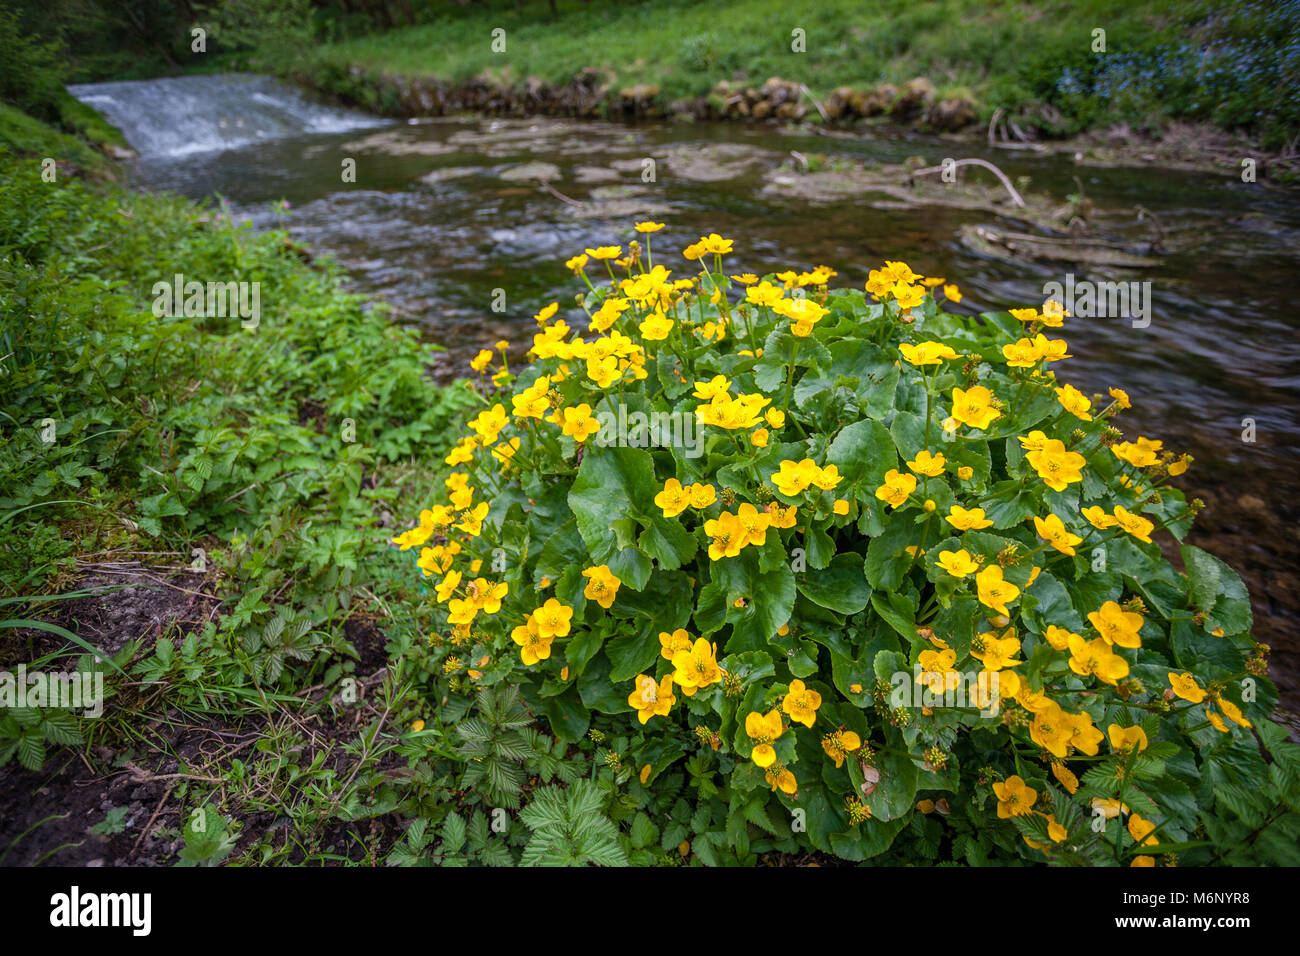 Marsh marigold or mollyblobs Caltha palustris growing beside the river in Bradford Dale near Youlgreave in the Derbyshire - Stock Image